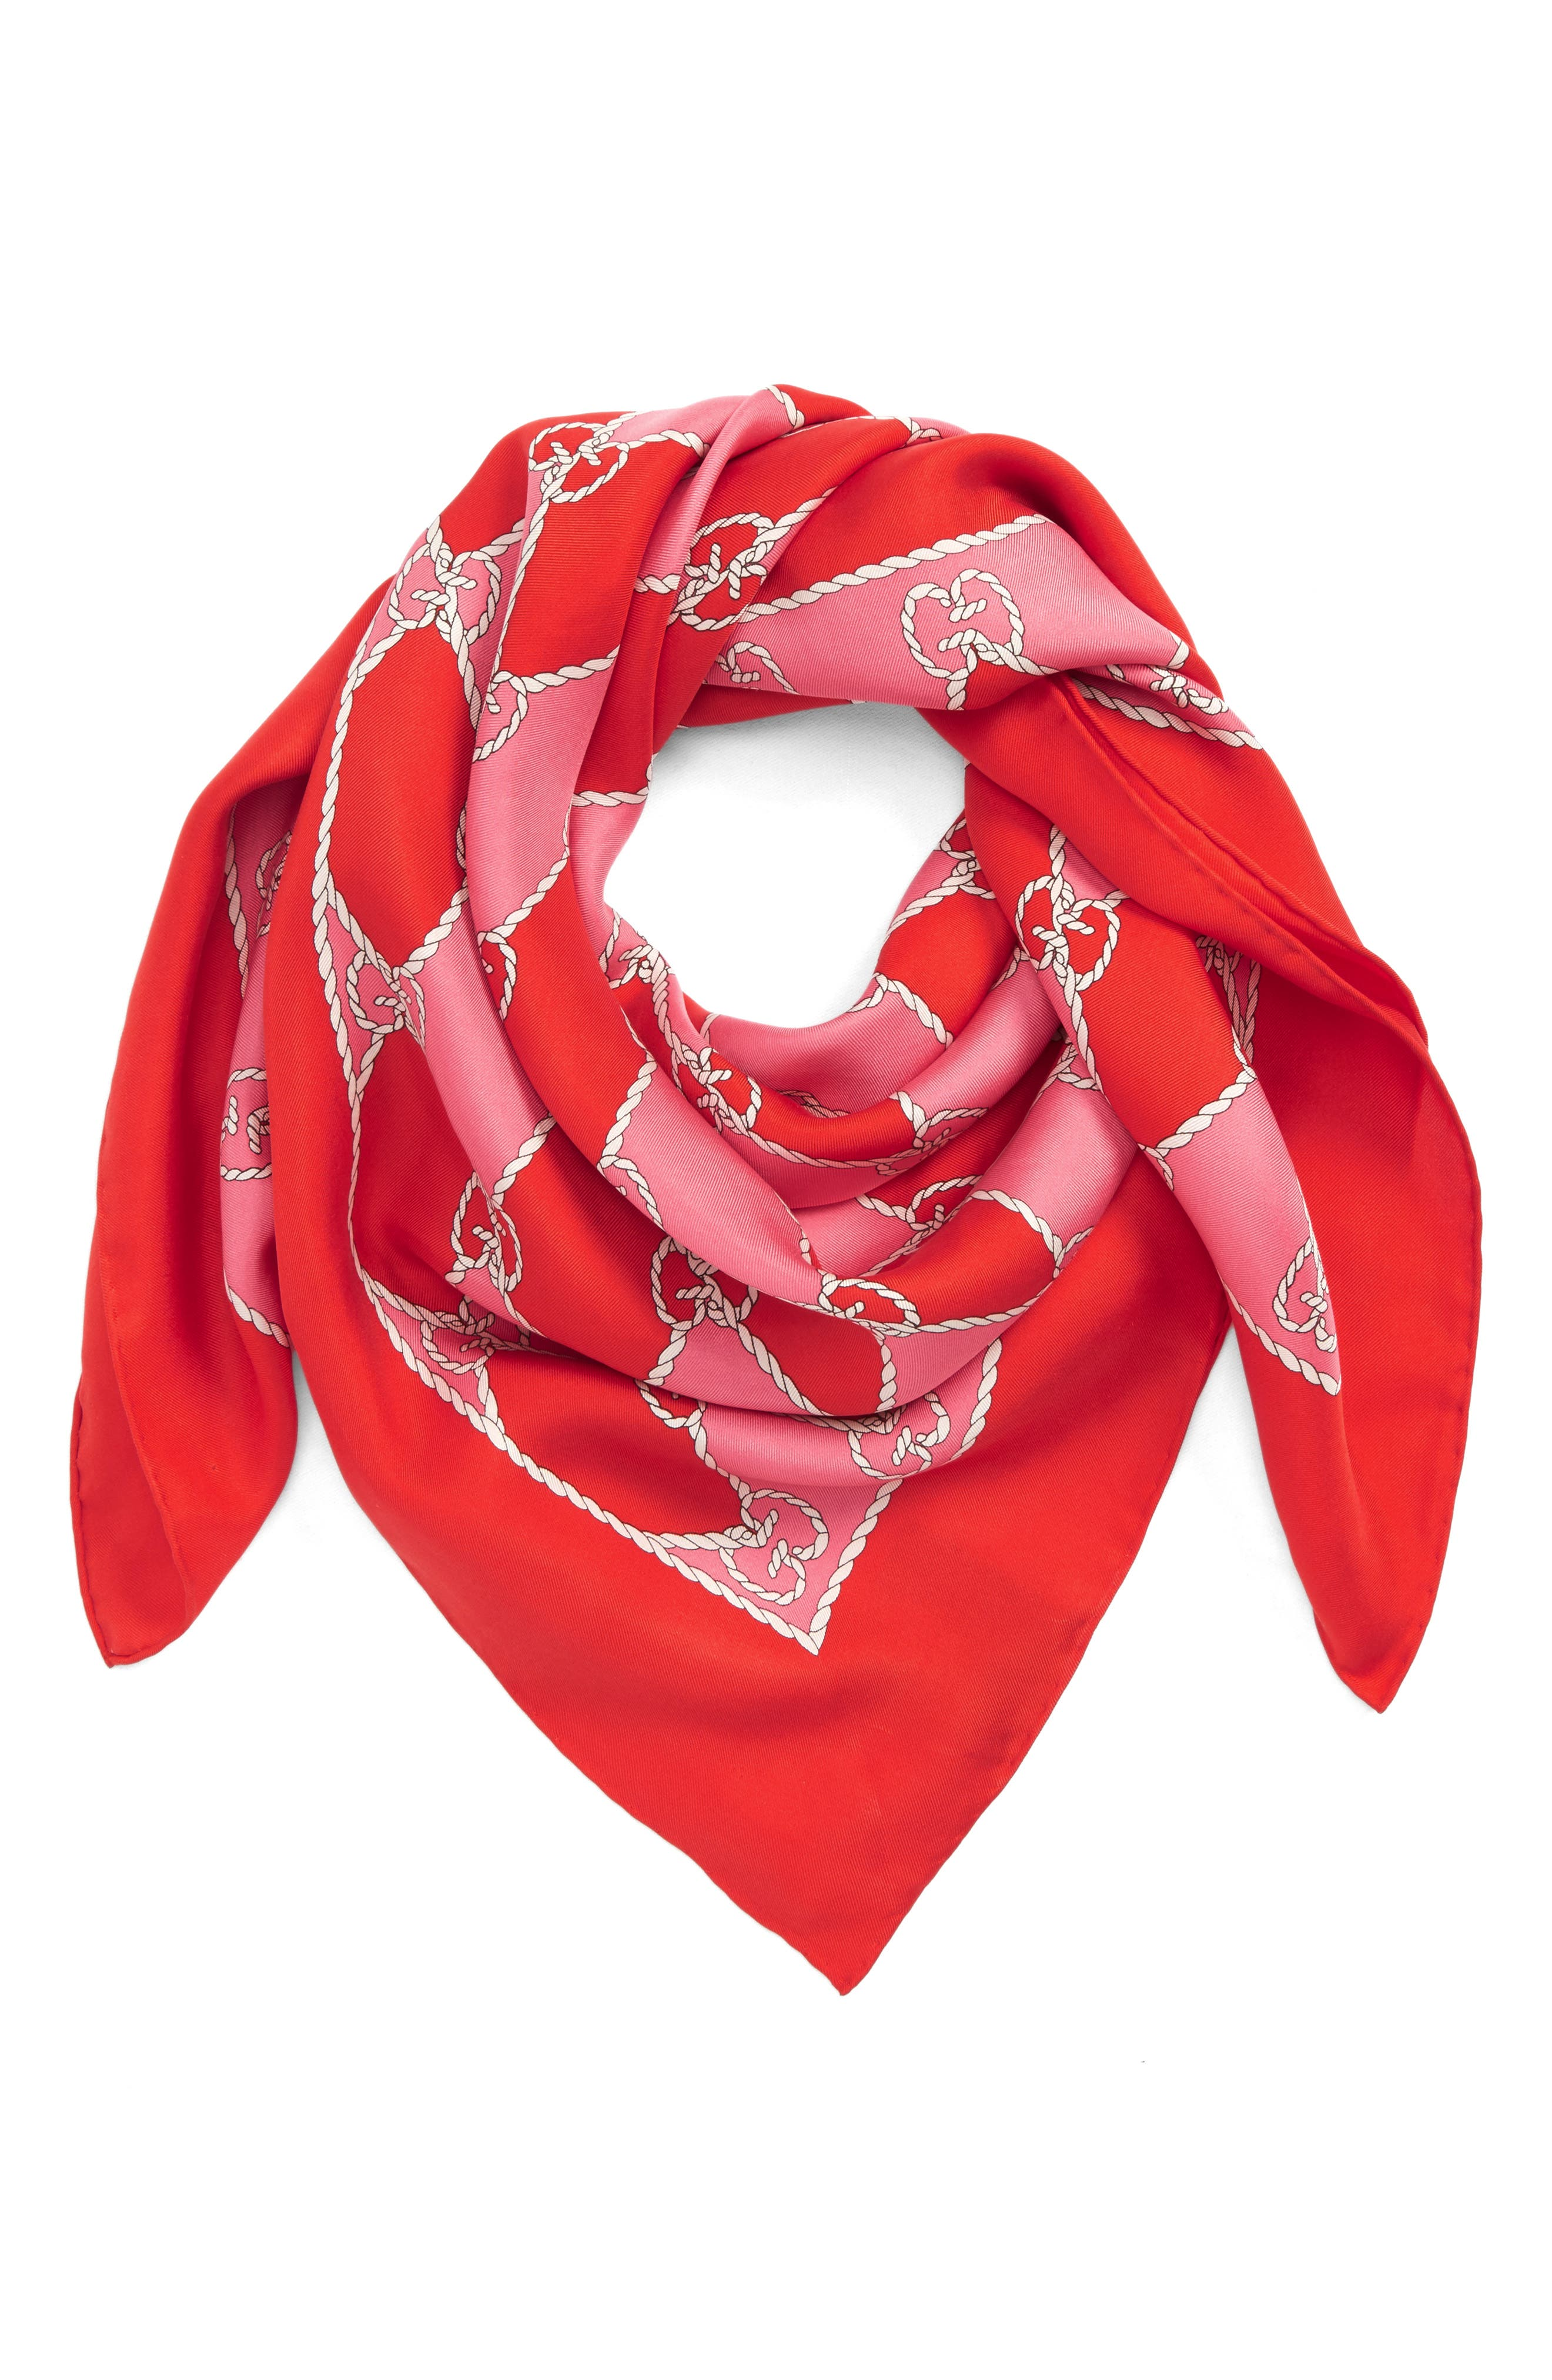 Rhombus Chane Square Foulard Silk Scarf,                             Alternate thumbnail 3, color,                             Red/ Pink